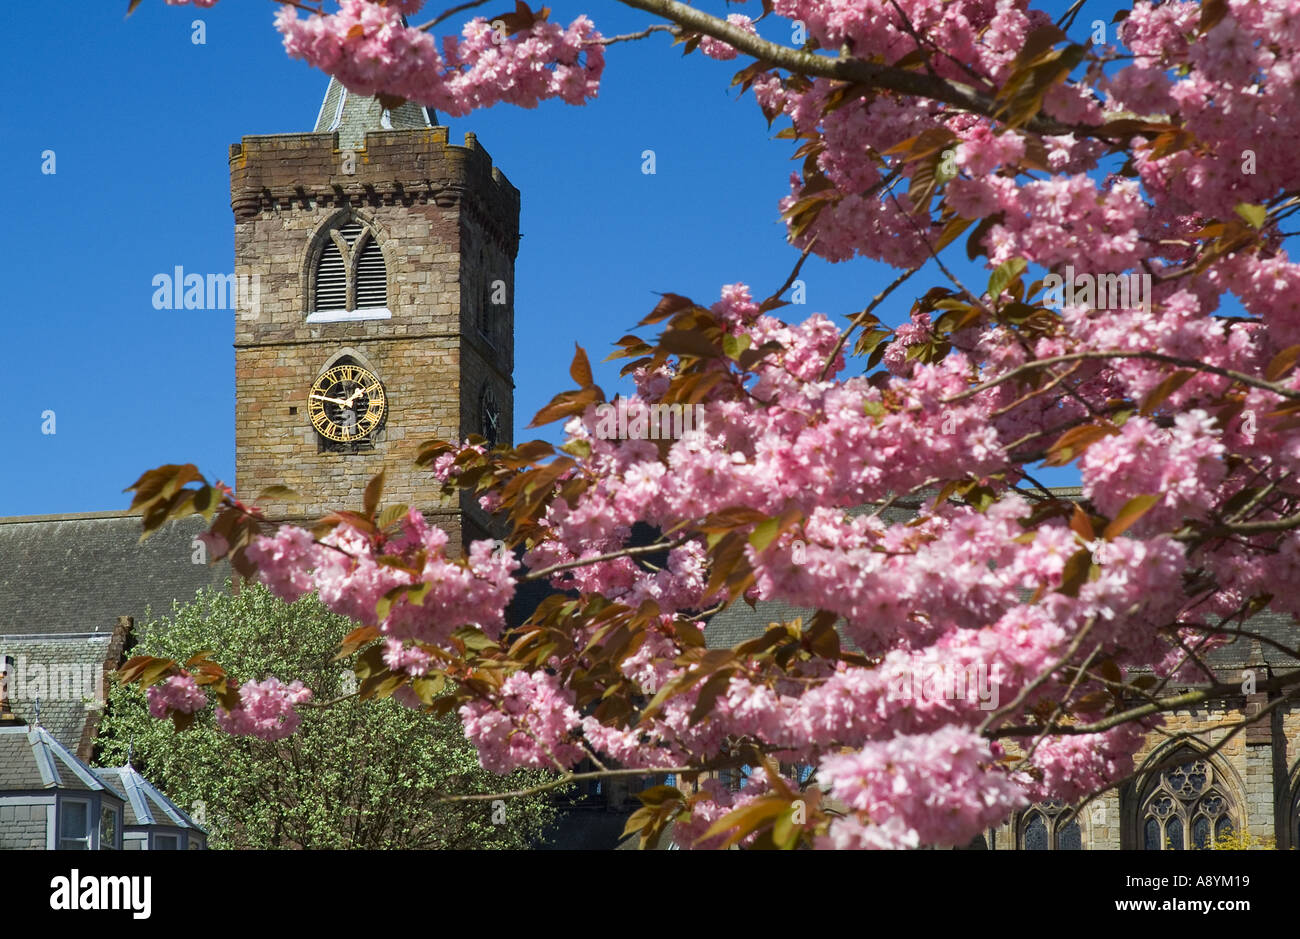 dh Dunblane cathedral DUNBLANE STIRLINGSHIRE UK Church clock tower springtime cherry blossom tree branches scotland Stock Photo